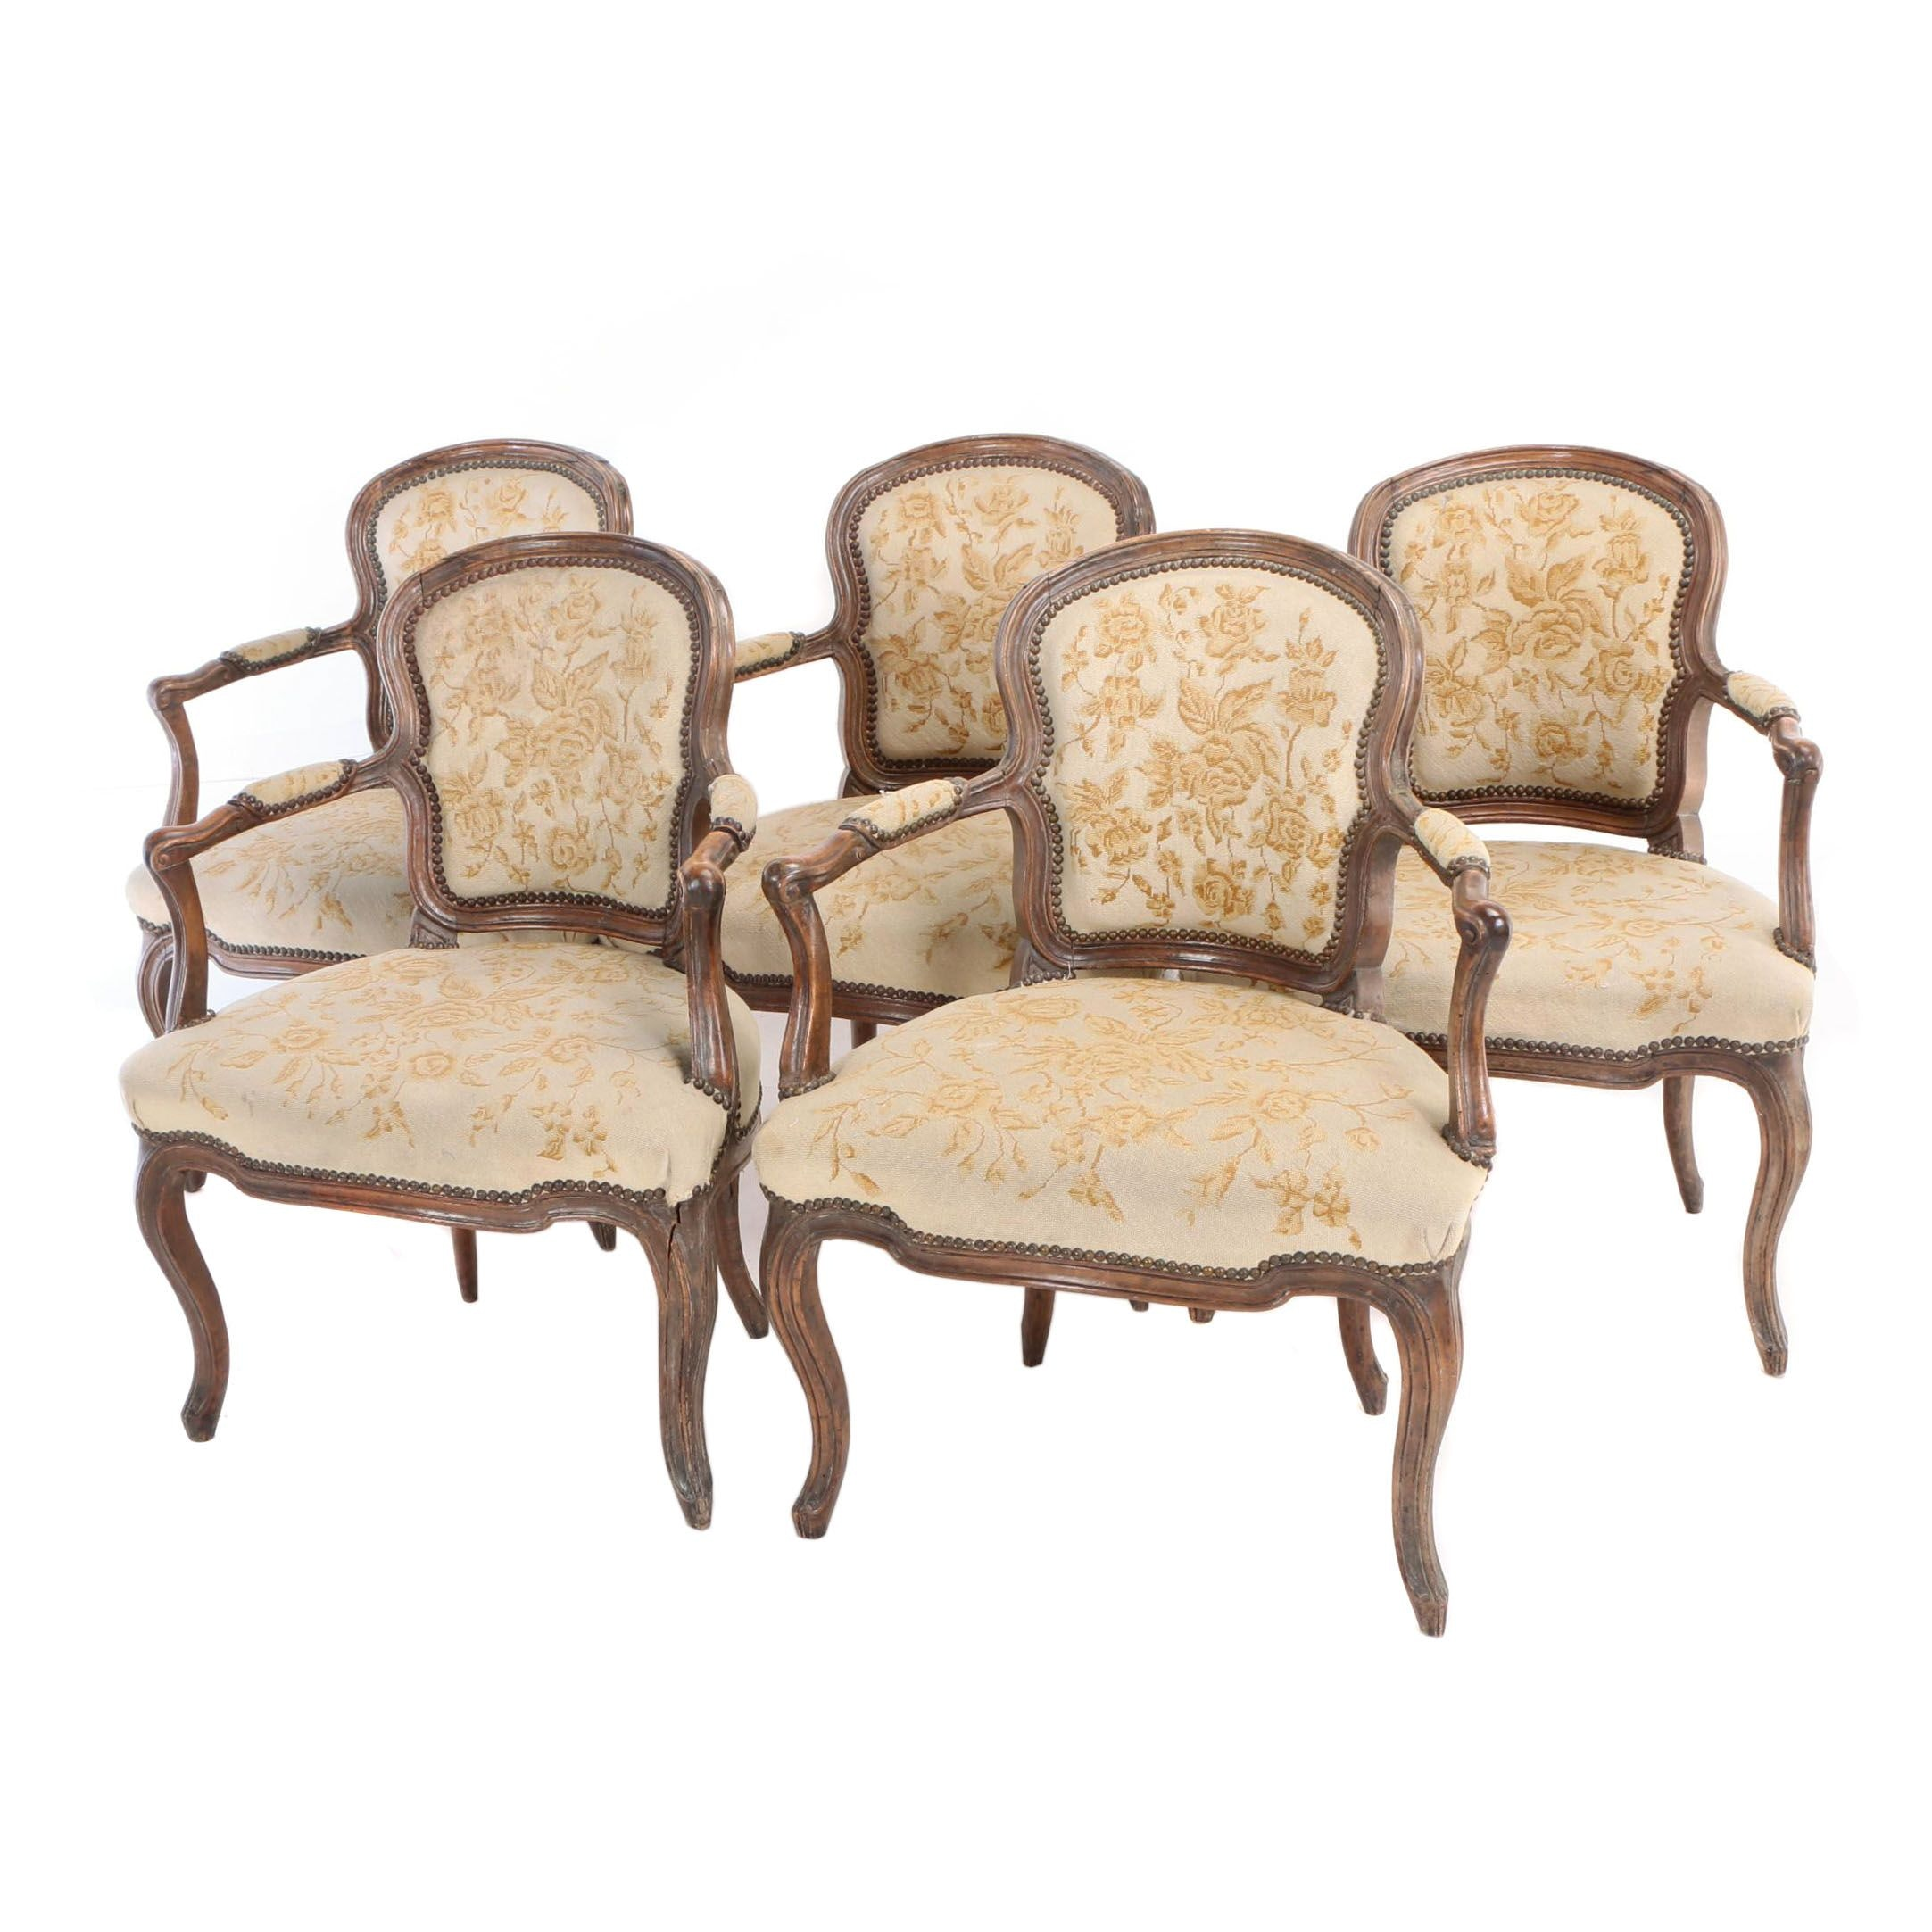 Five Louis XV Style Carved Walnut Fauteuils, 19th Century